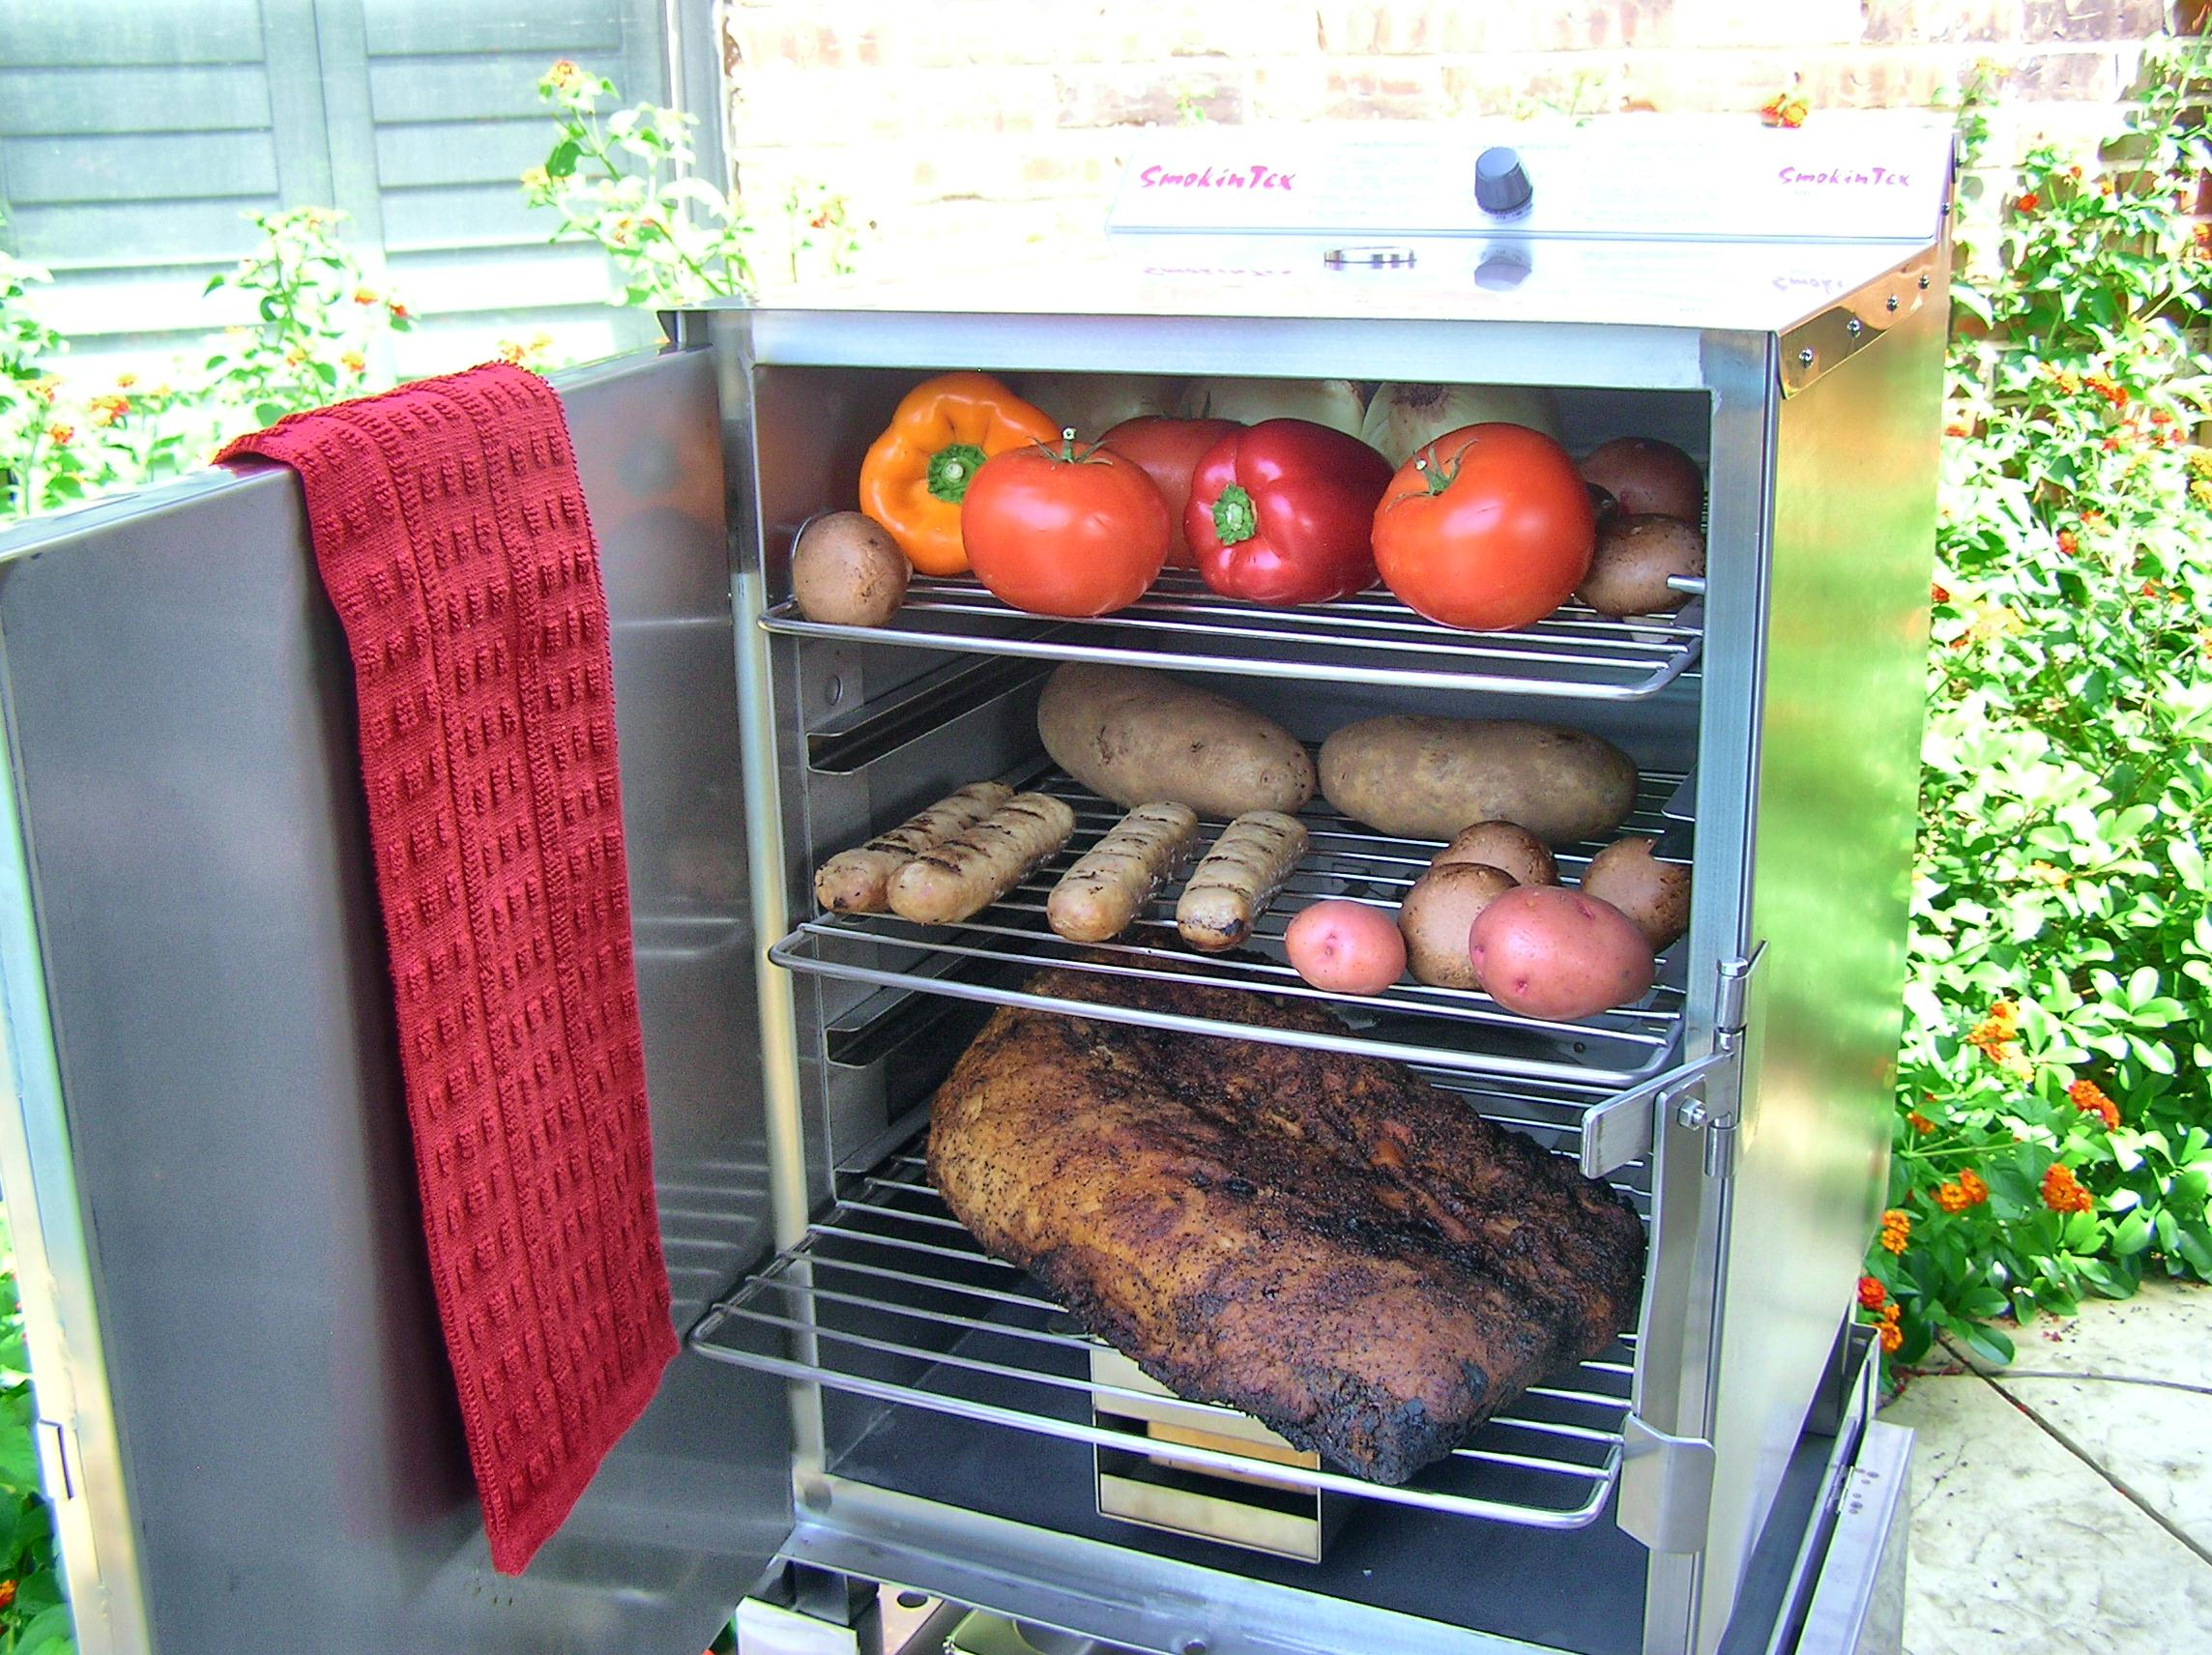 SmokinTex Electric BBQ Smoker model 1400